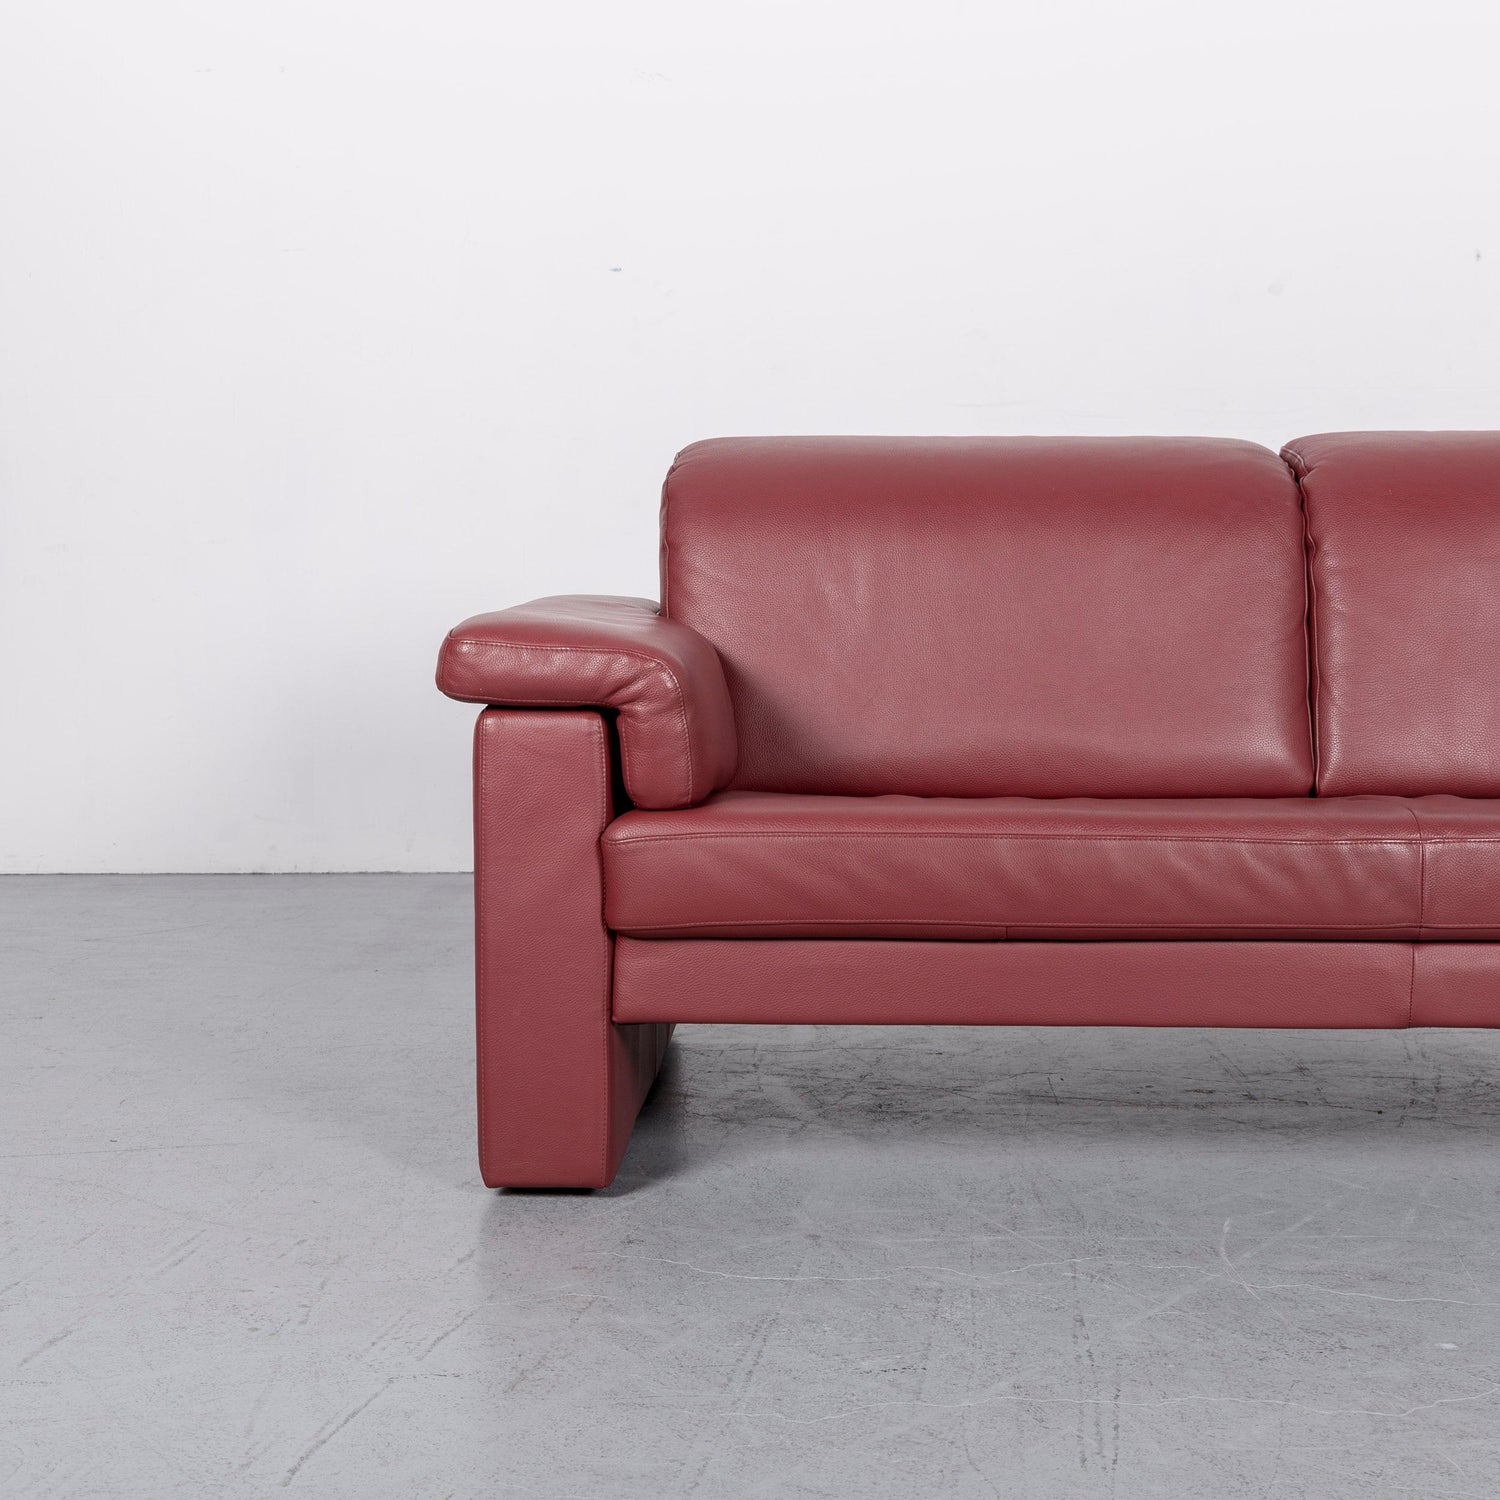 Rolf Benz 4000 Designer Leather Sofa Red Three-Seat Couch at 1stdibs